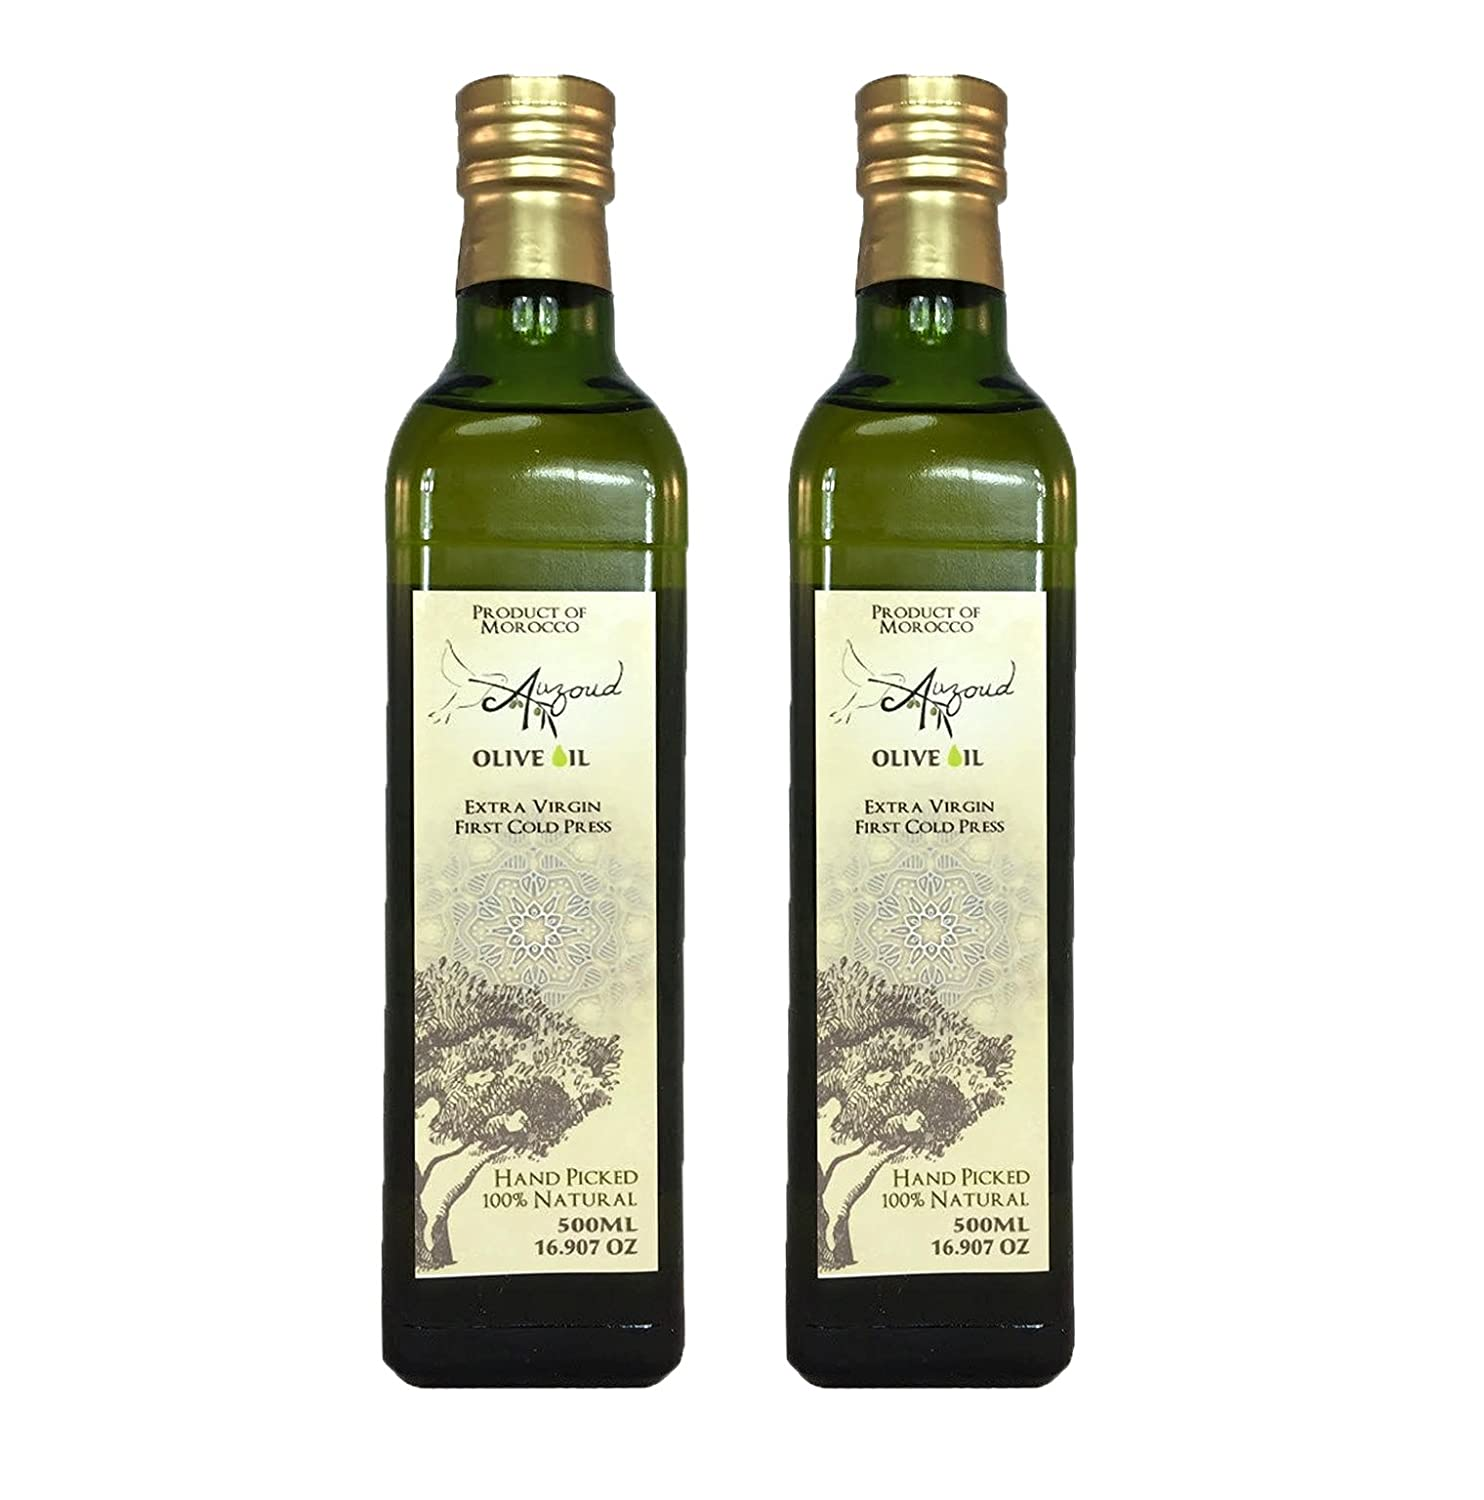 Auzoud Extra Virgin Olive Oil, Supports North African Women Farmers, 100%  Natural, Hand-Picked, Cold